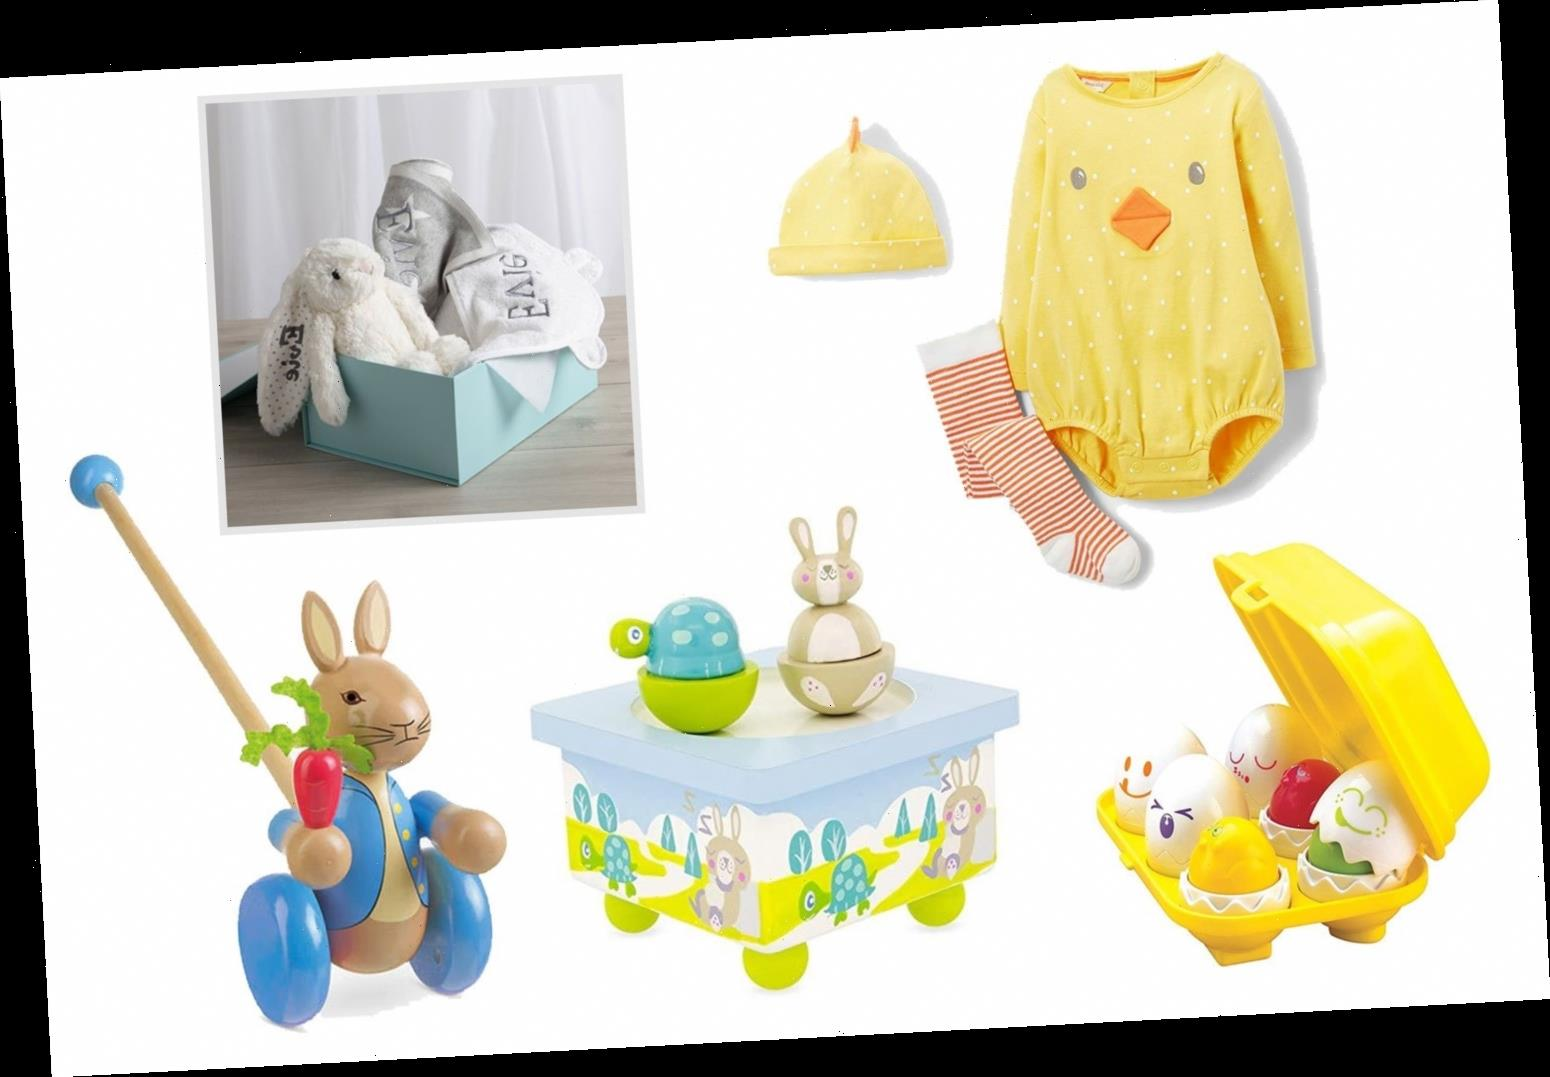 6 Best Easter Baby Gifts 2020 | The Sun UK